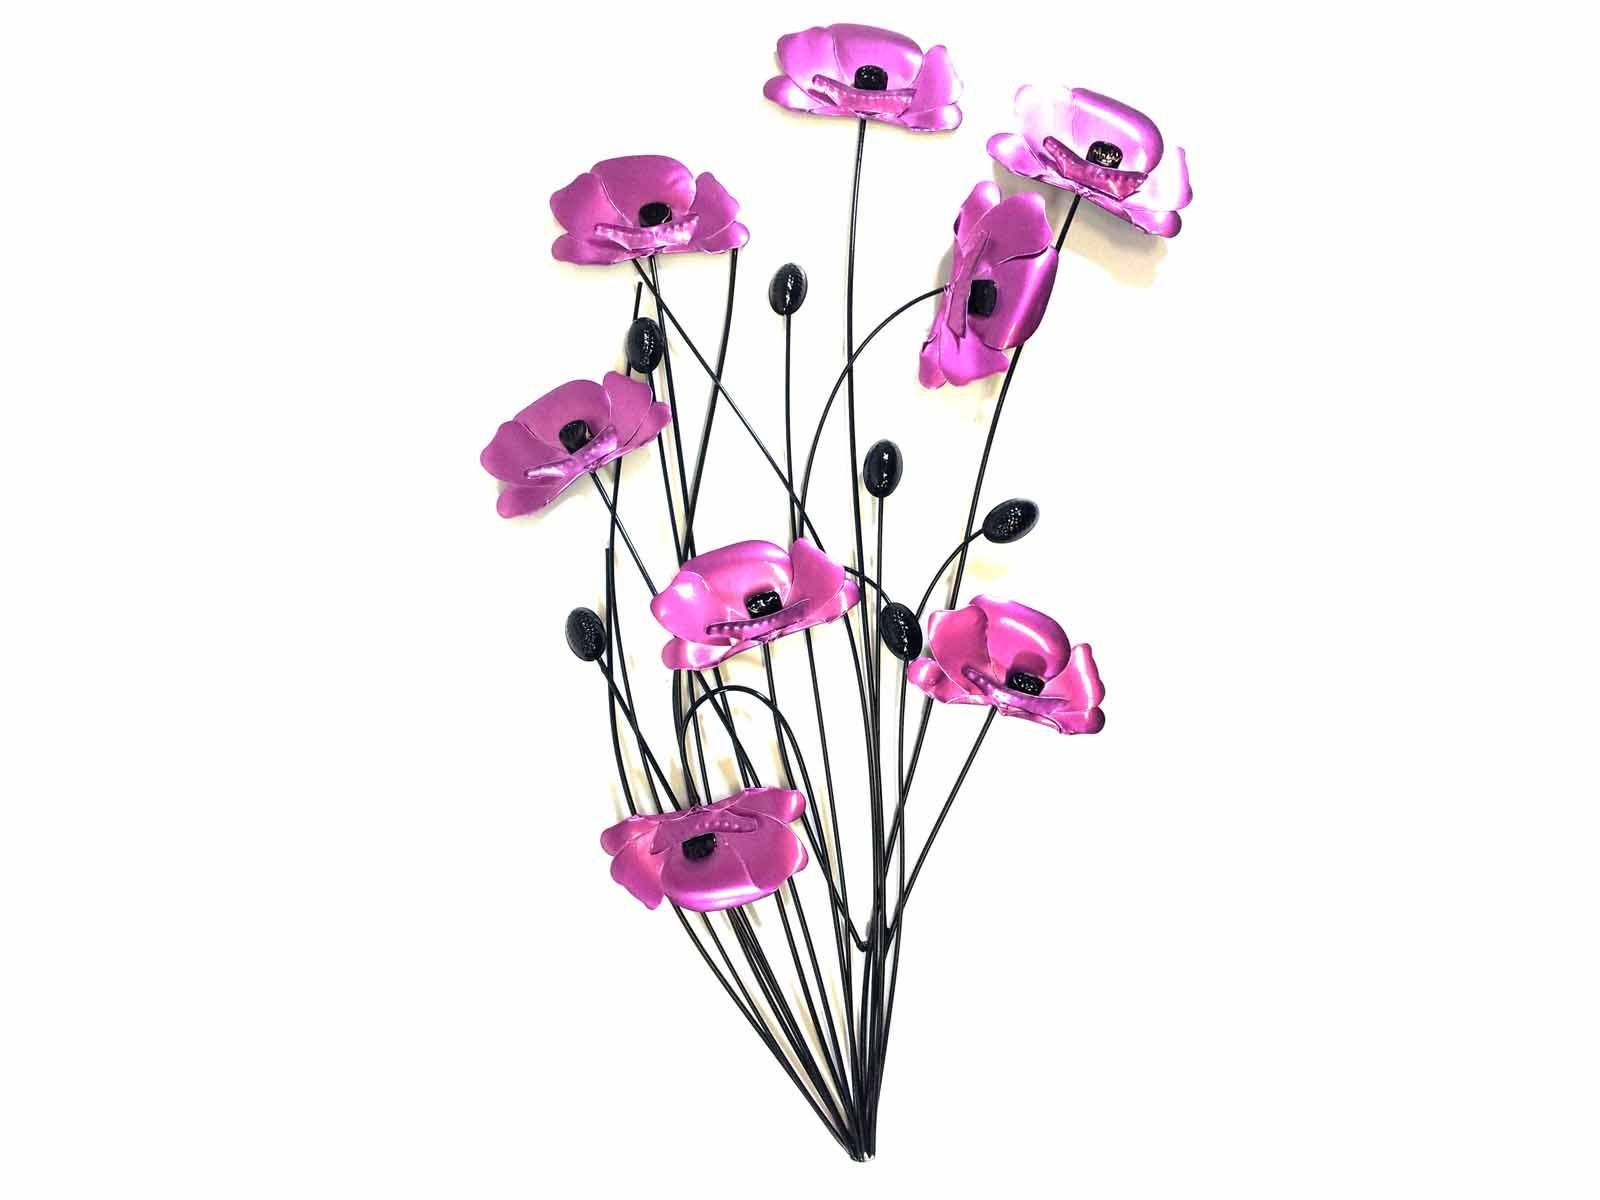 Metal Wall Art – Purple Pink Poppy Flower Bunch For Best And Newest Poppy Metal Wall Art (View 4 of 20)